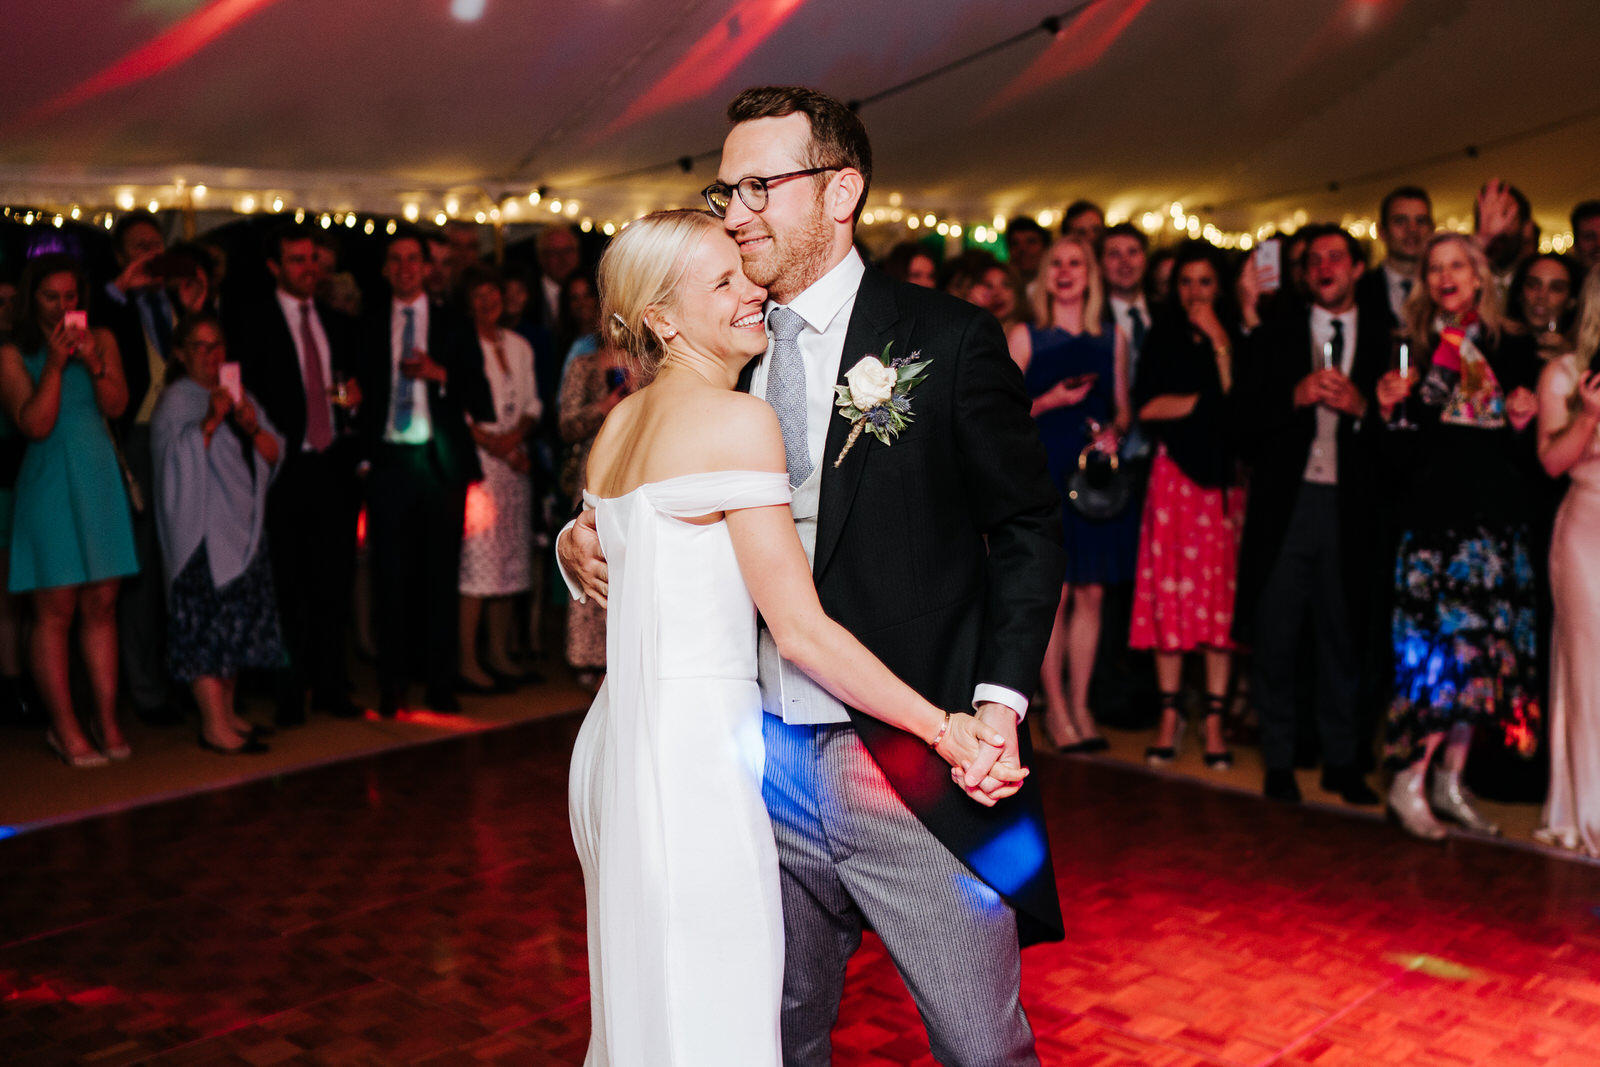 Bride and groom embrace as they have their first dance with guests cheering from the back